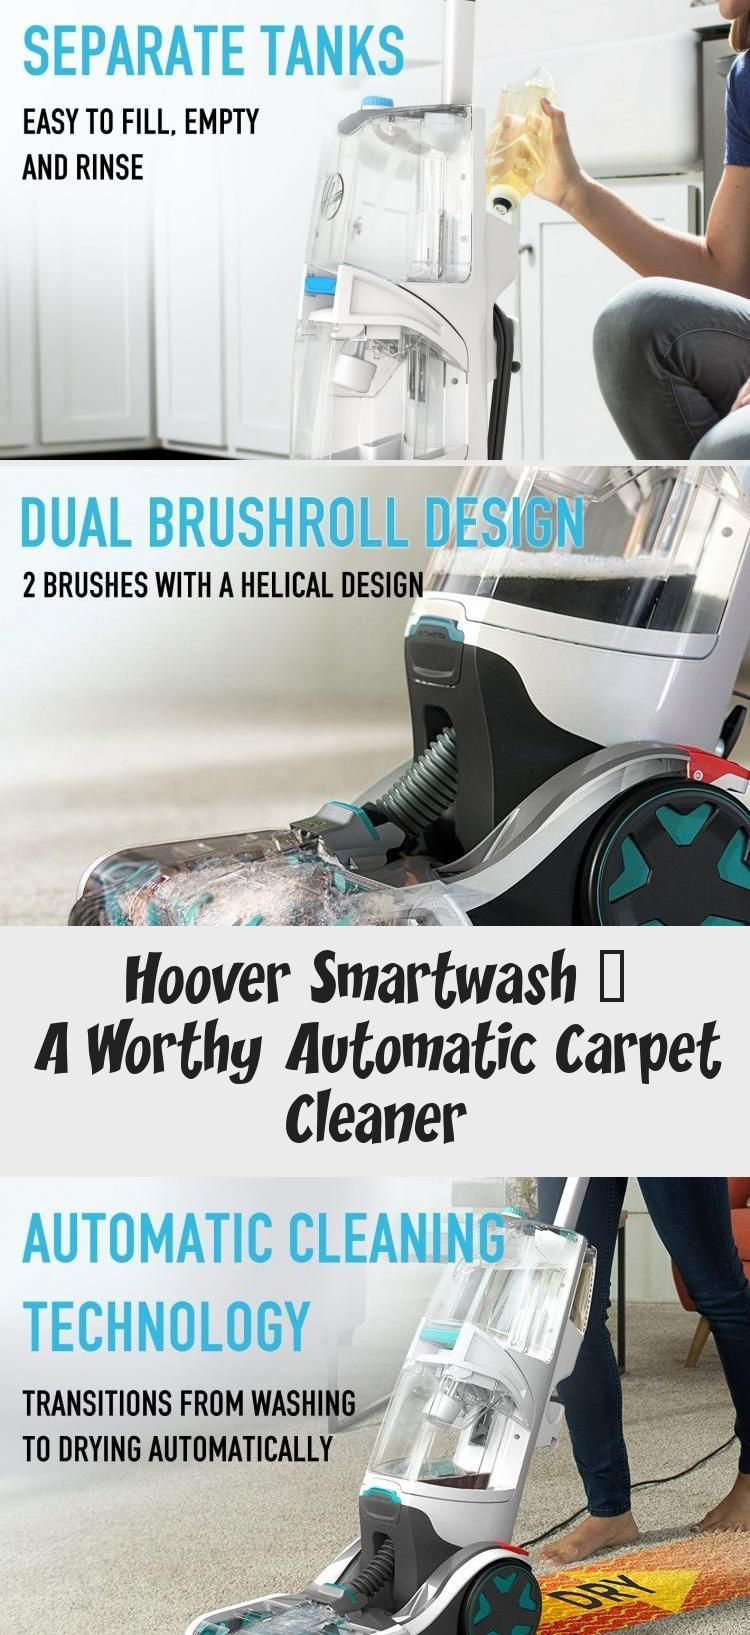 Hoover SmartWash a worthy automatic carpet cleaner